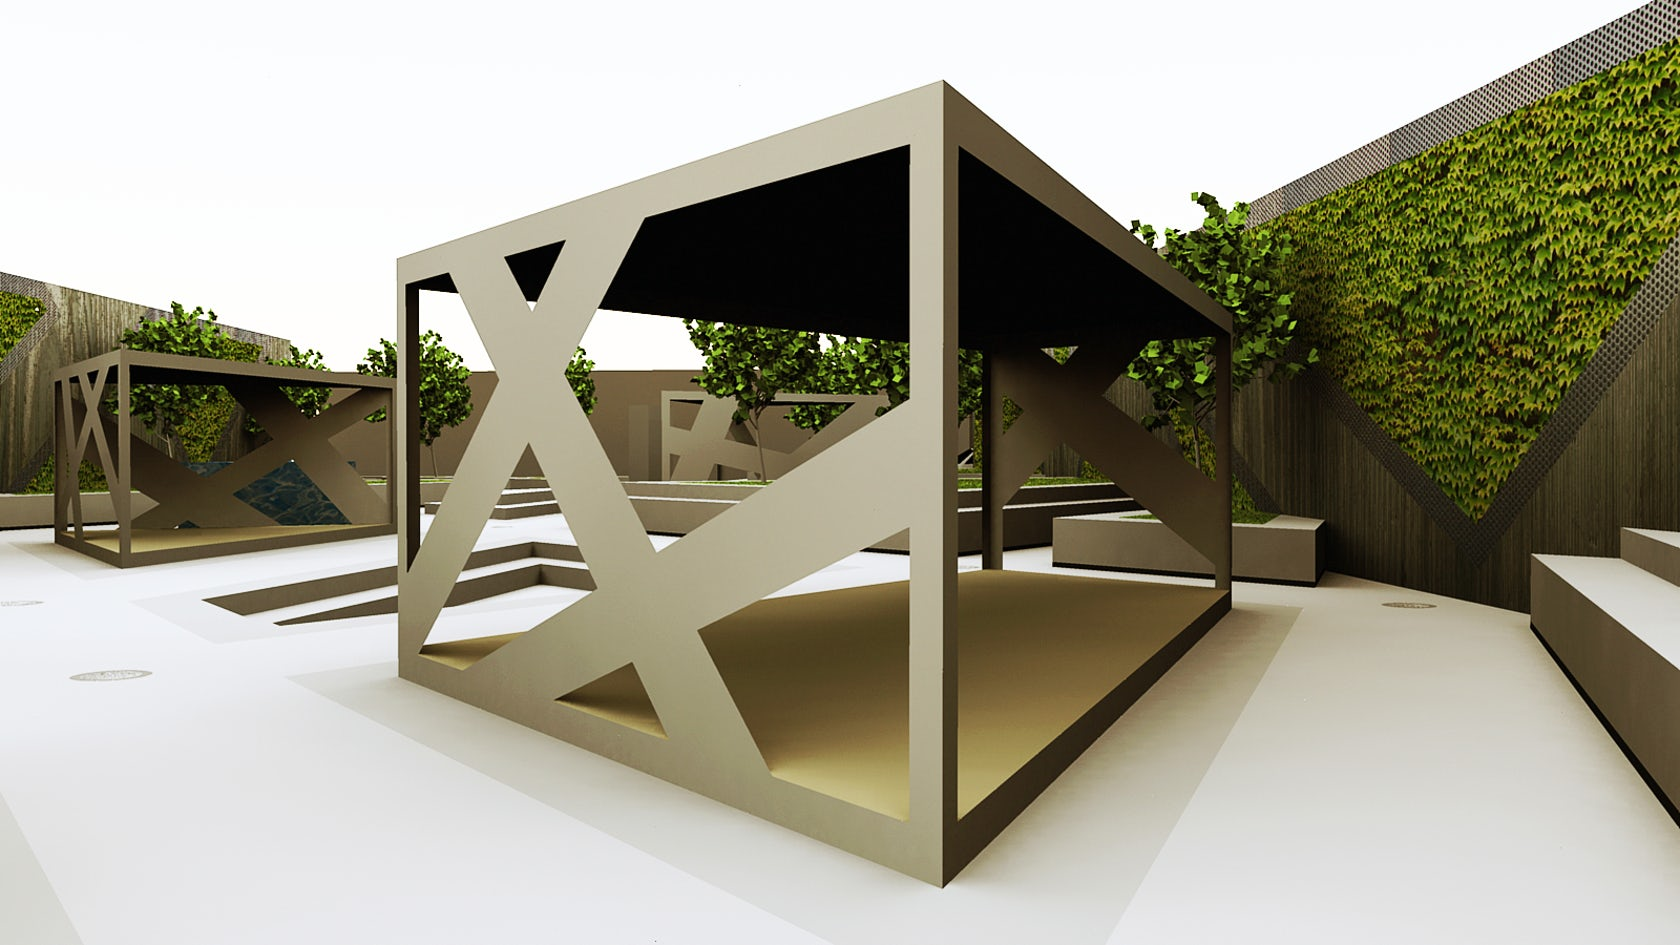 embassy park design competition architizer